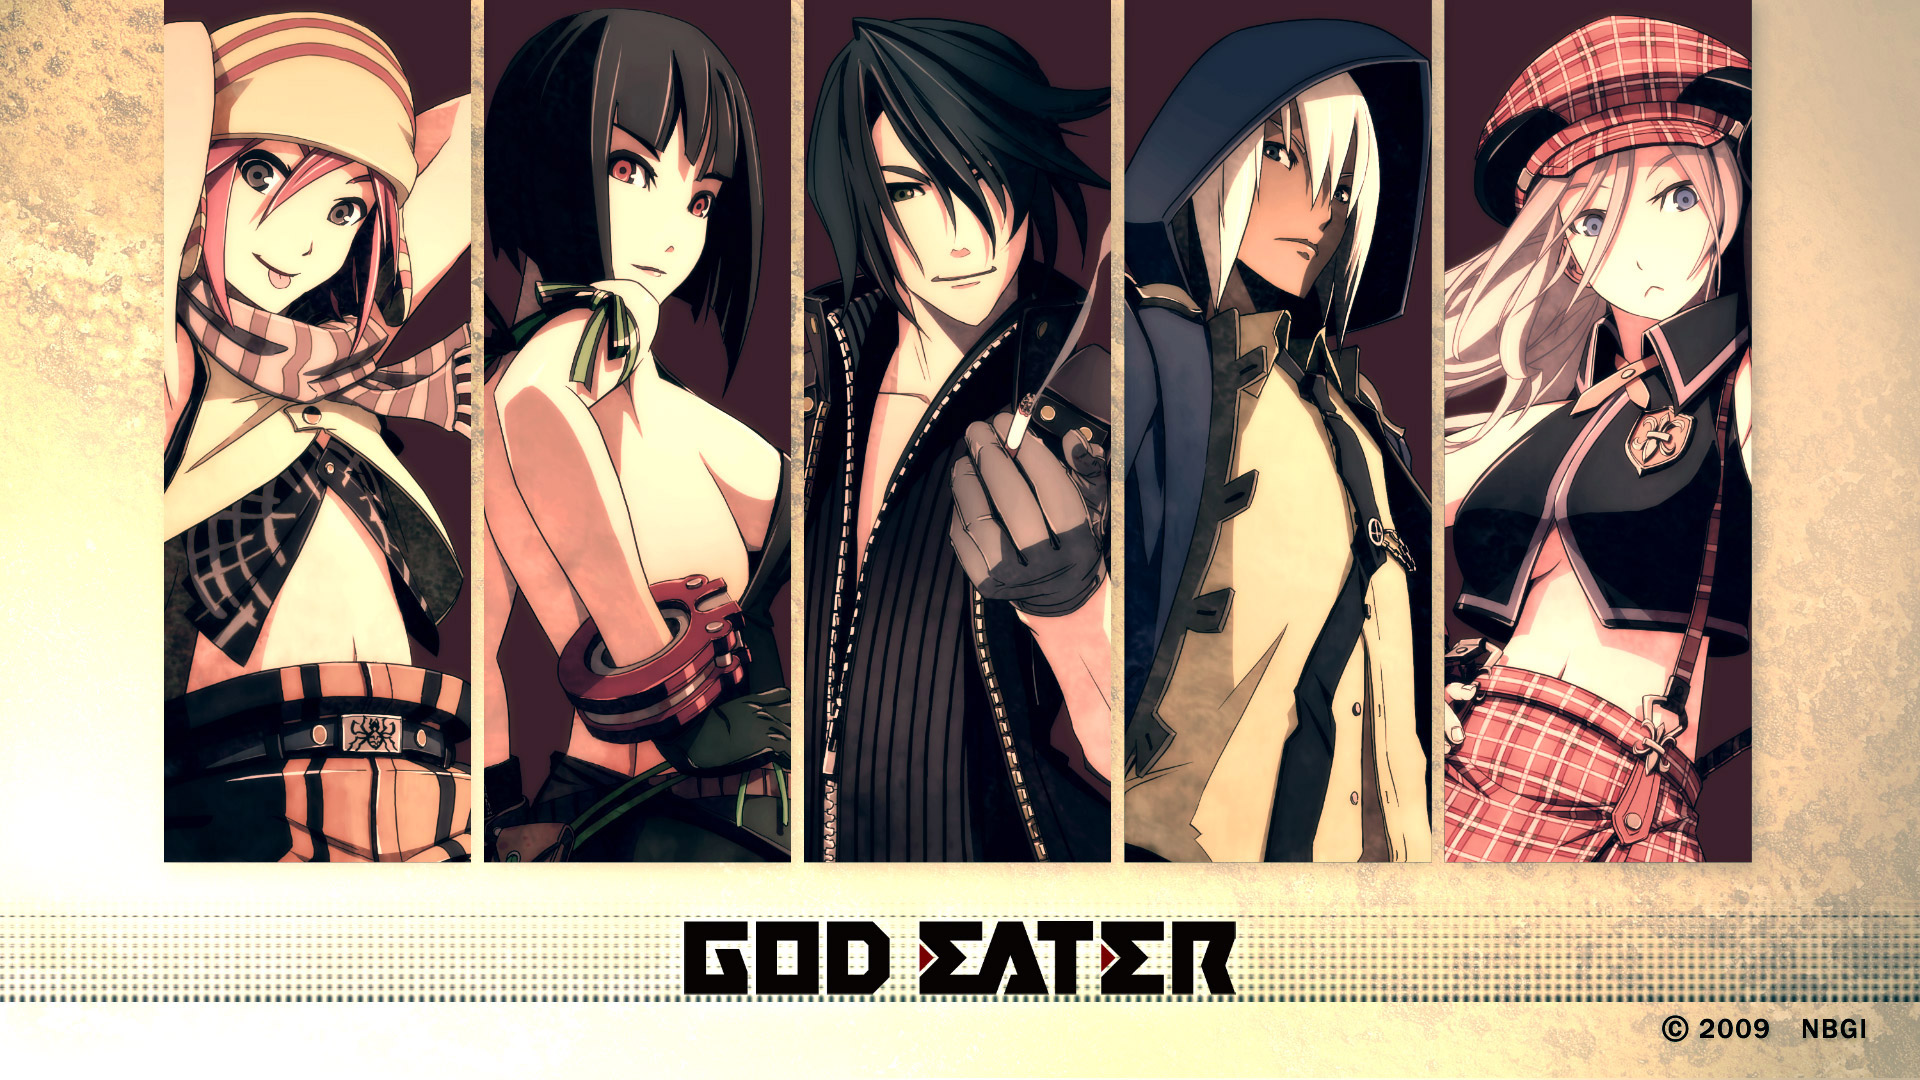 Free God Eater Wallpaper in 1920x1080